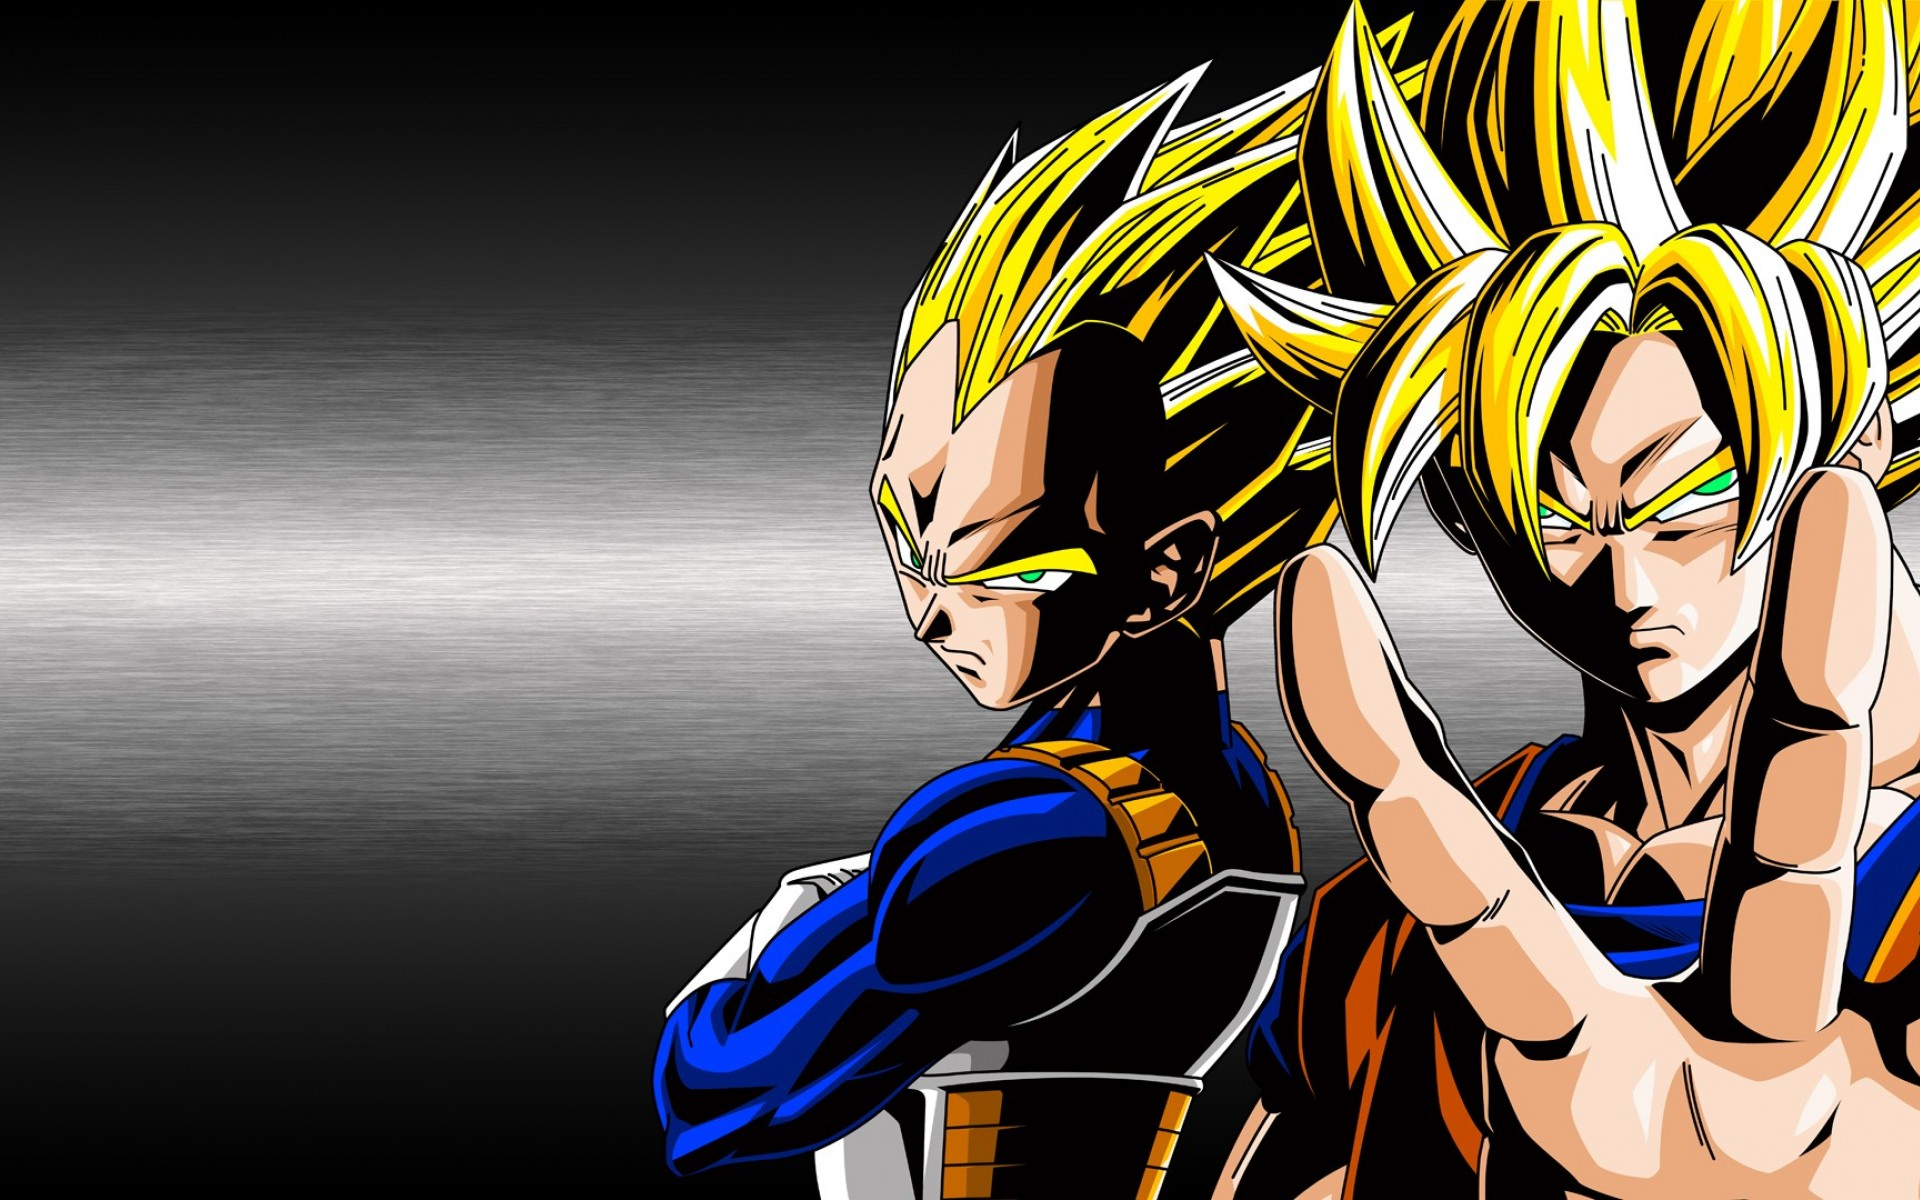 Vegeta wallpapers photos and desktop backgrounds up to 8k - Dragon ball z 4 ...